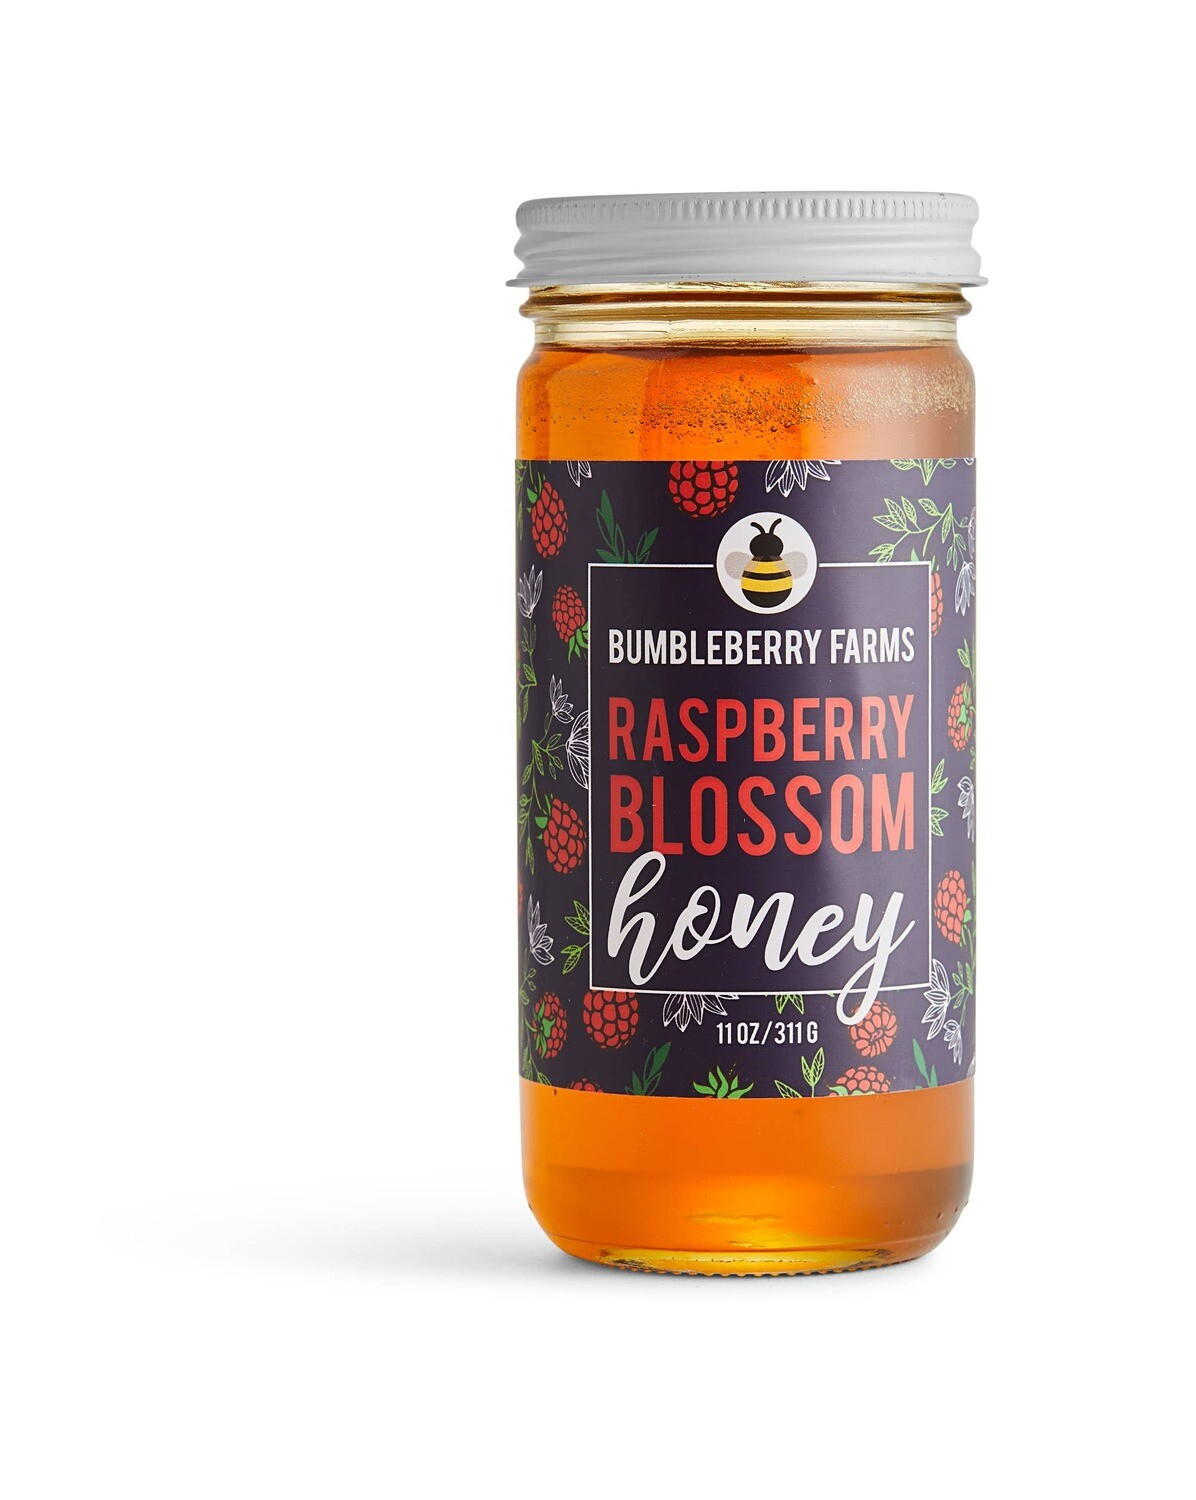 Raspberry Blossom Honey